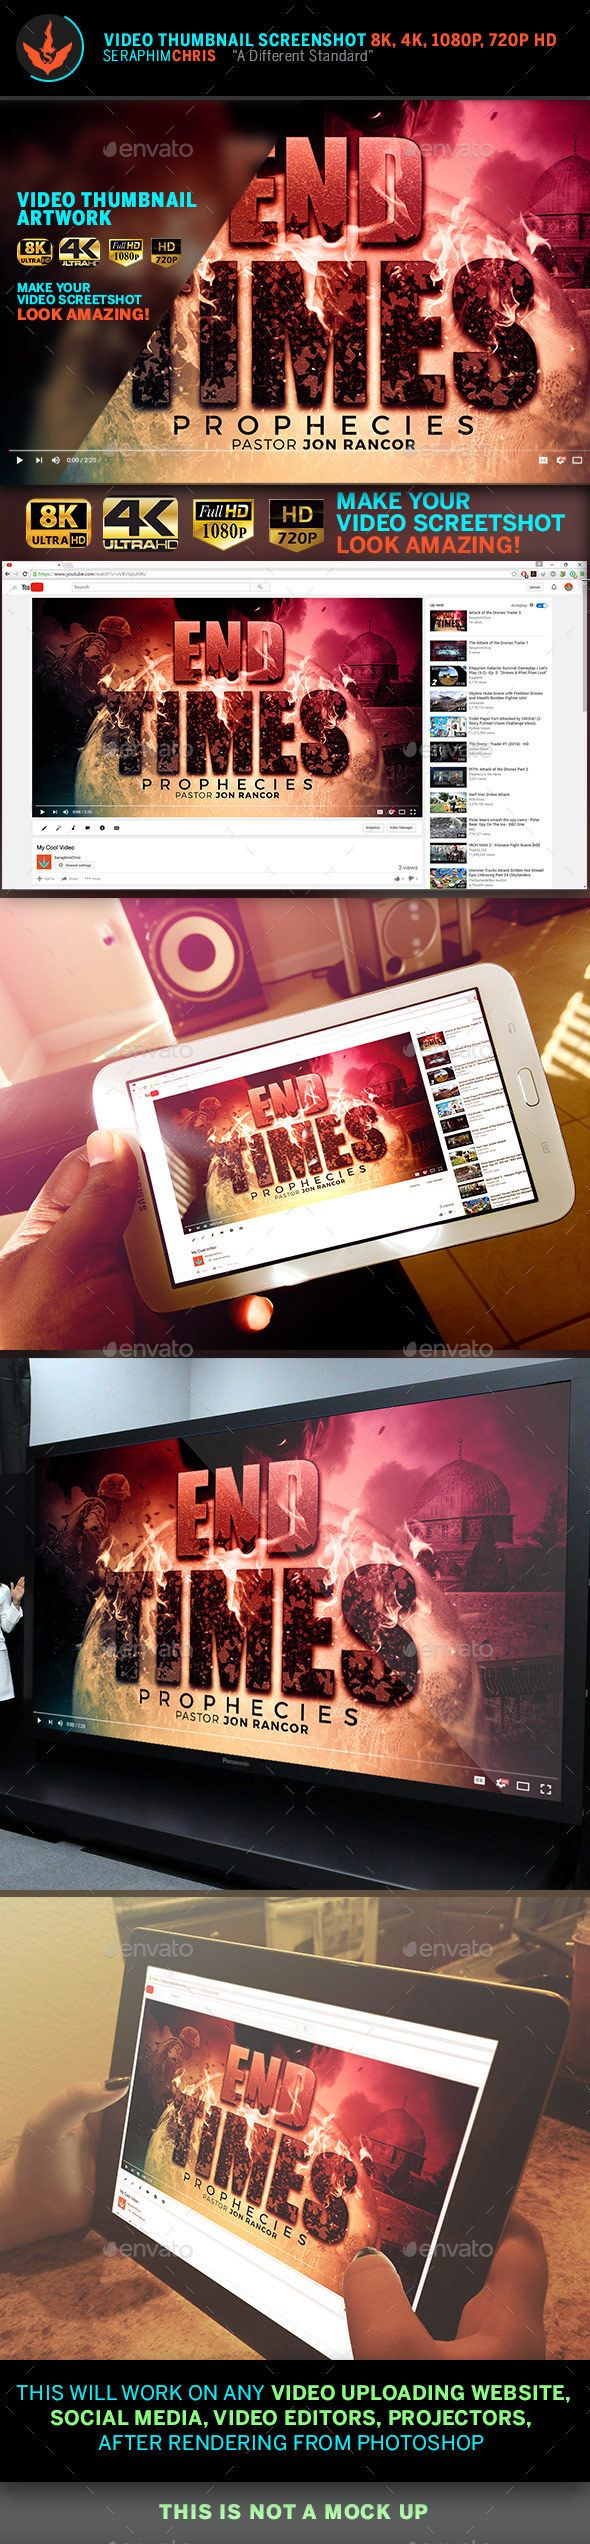 pin by best graphic design on youtube backgrounds pinterest